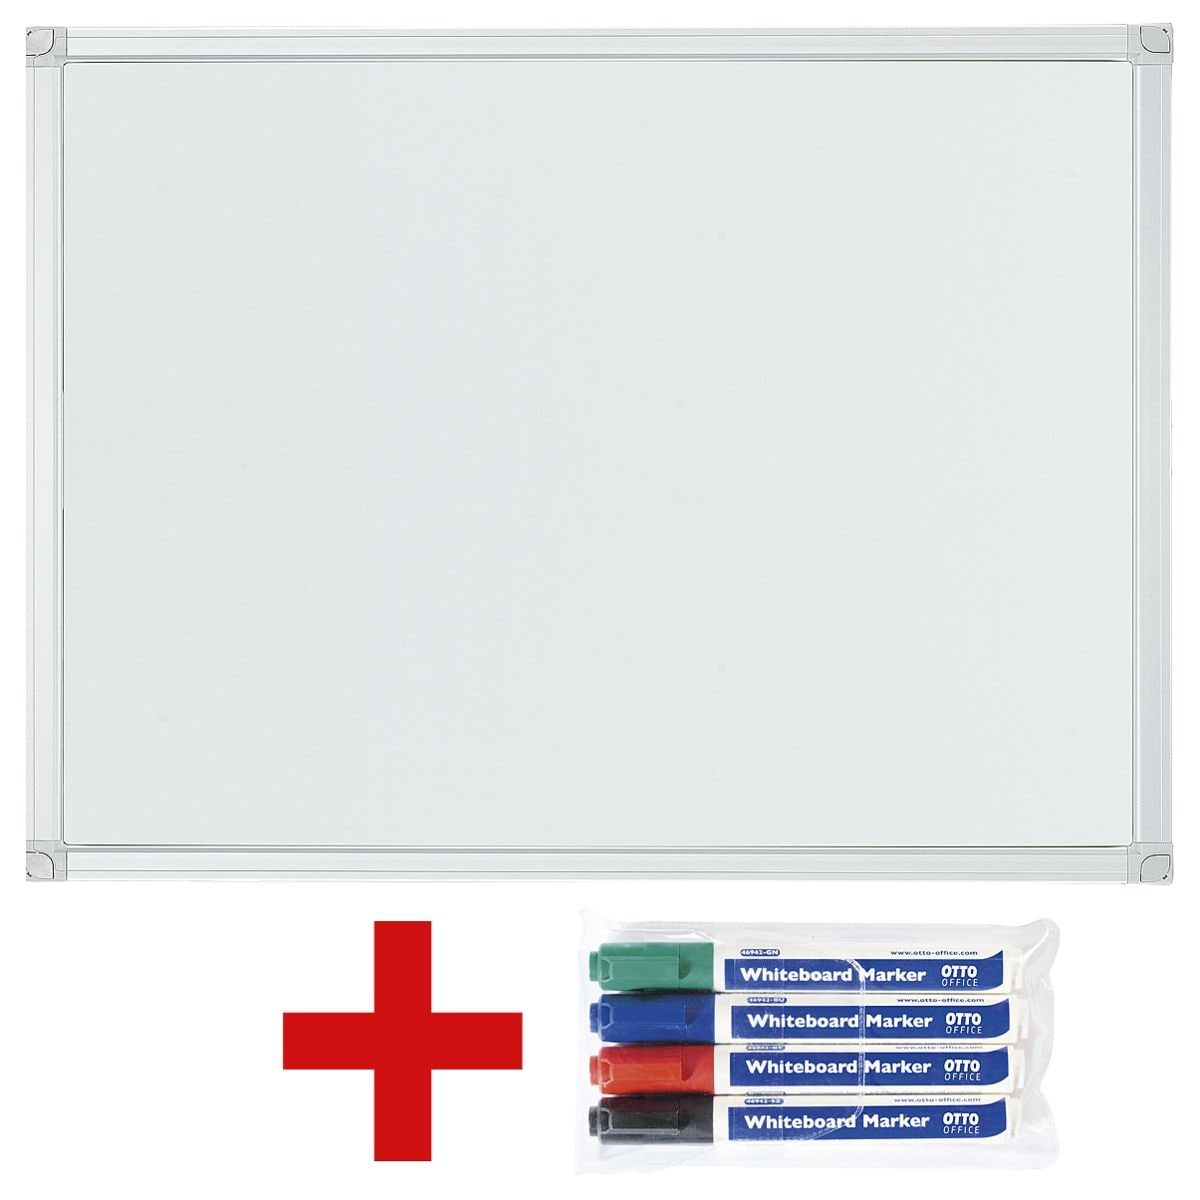 OTTO Office Whiteboard lackiert, 60x45 cm inkl. 4er-Pack Whiteboard-Marker